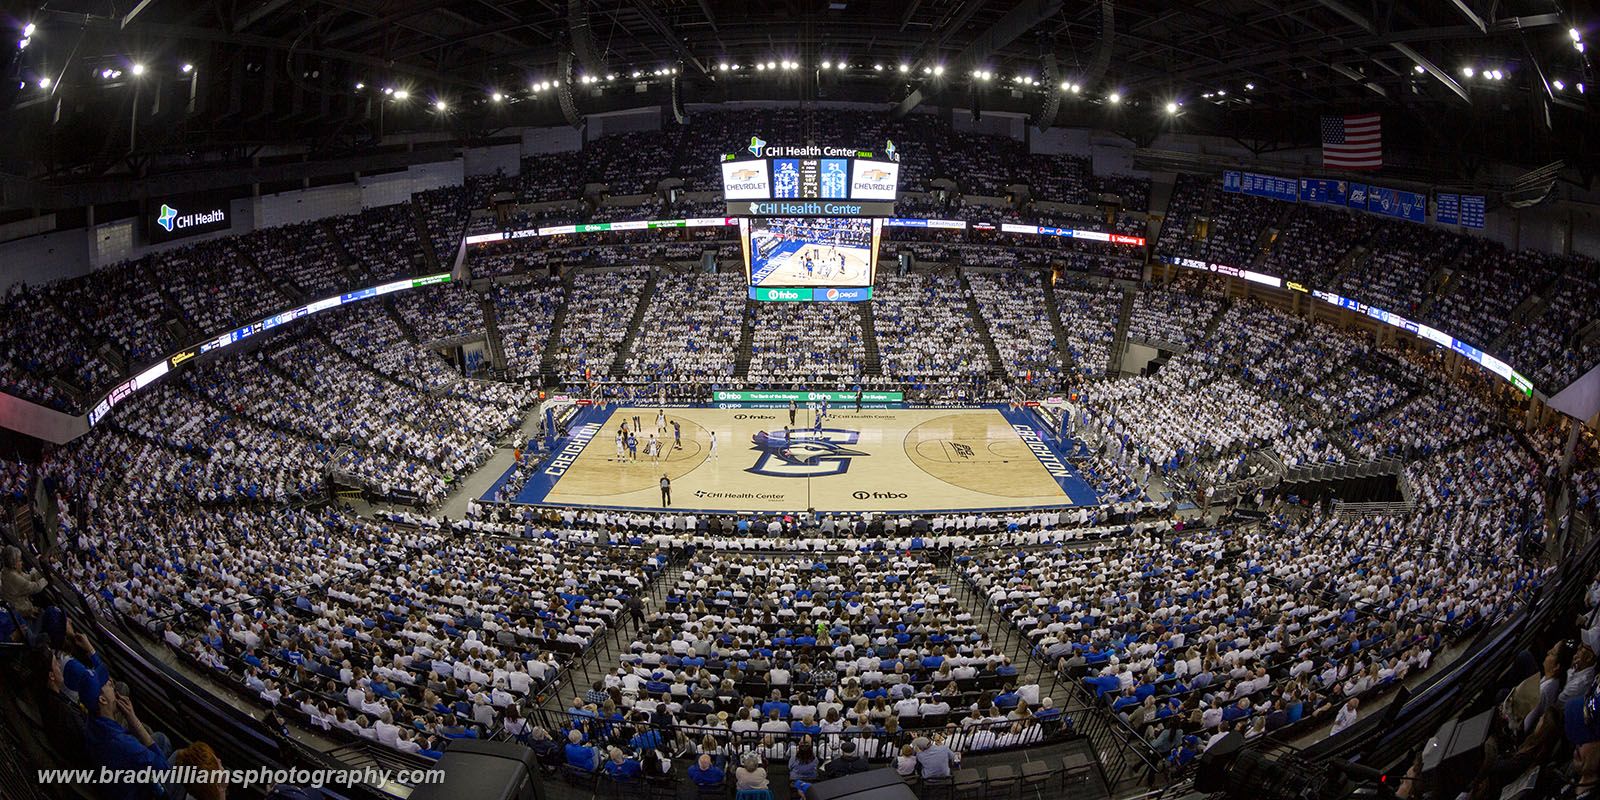 2020 Creighton VS Seton Hall 3/7/2020. Attendance = 18,519.  As of 3/7/2020 this was the 10th largest home crowd in Creighton...